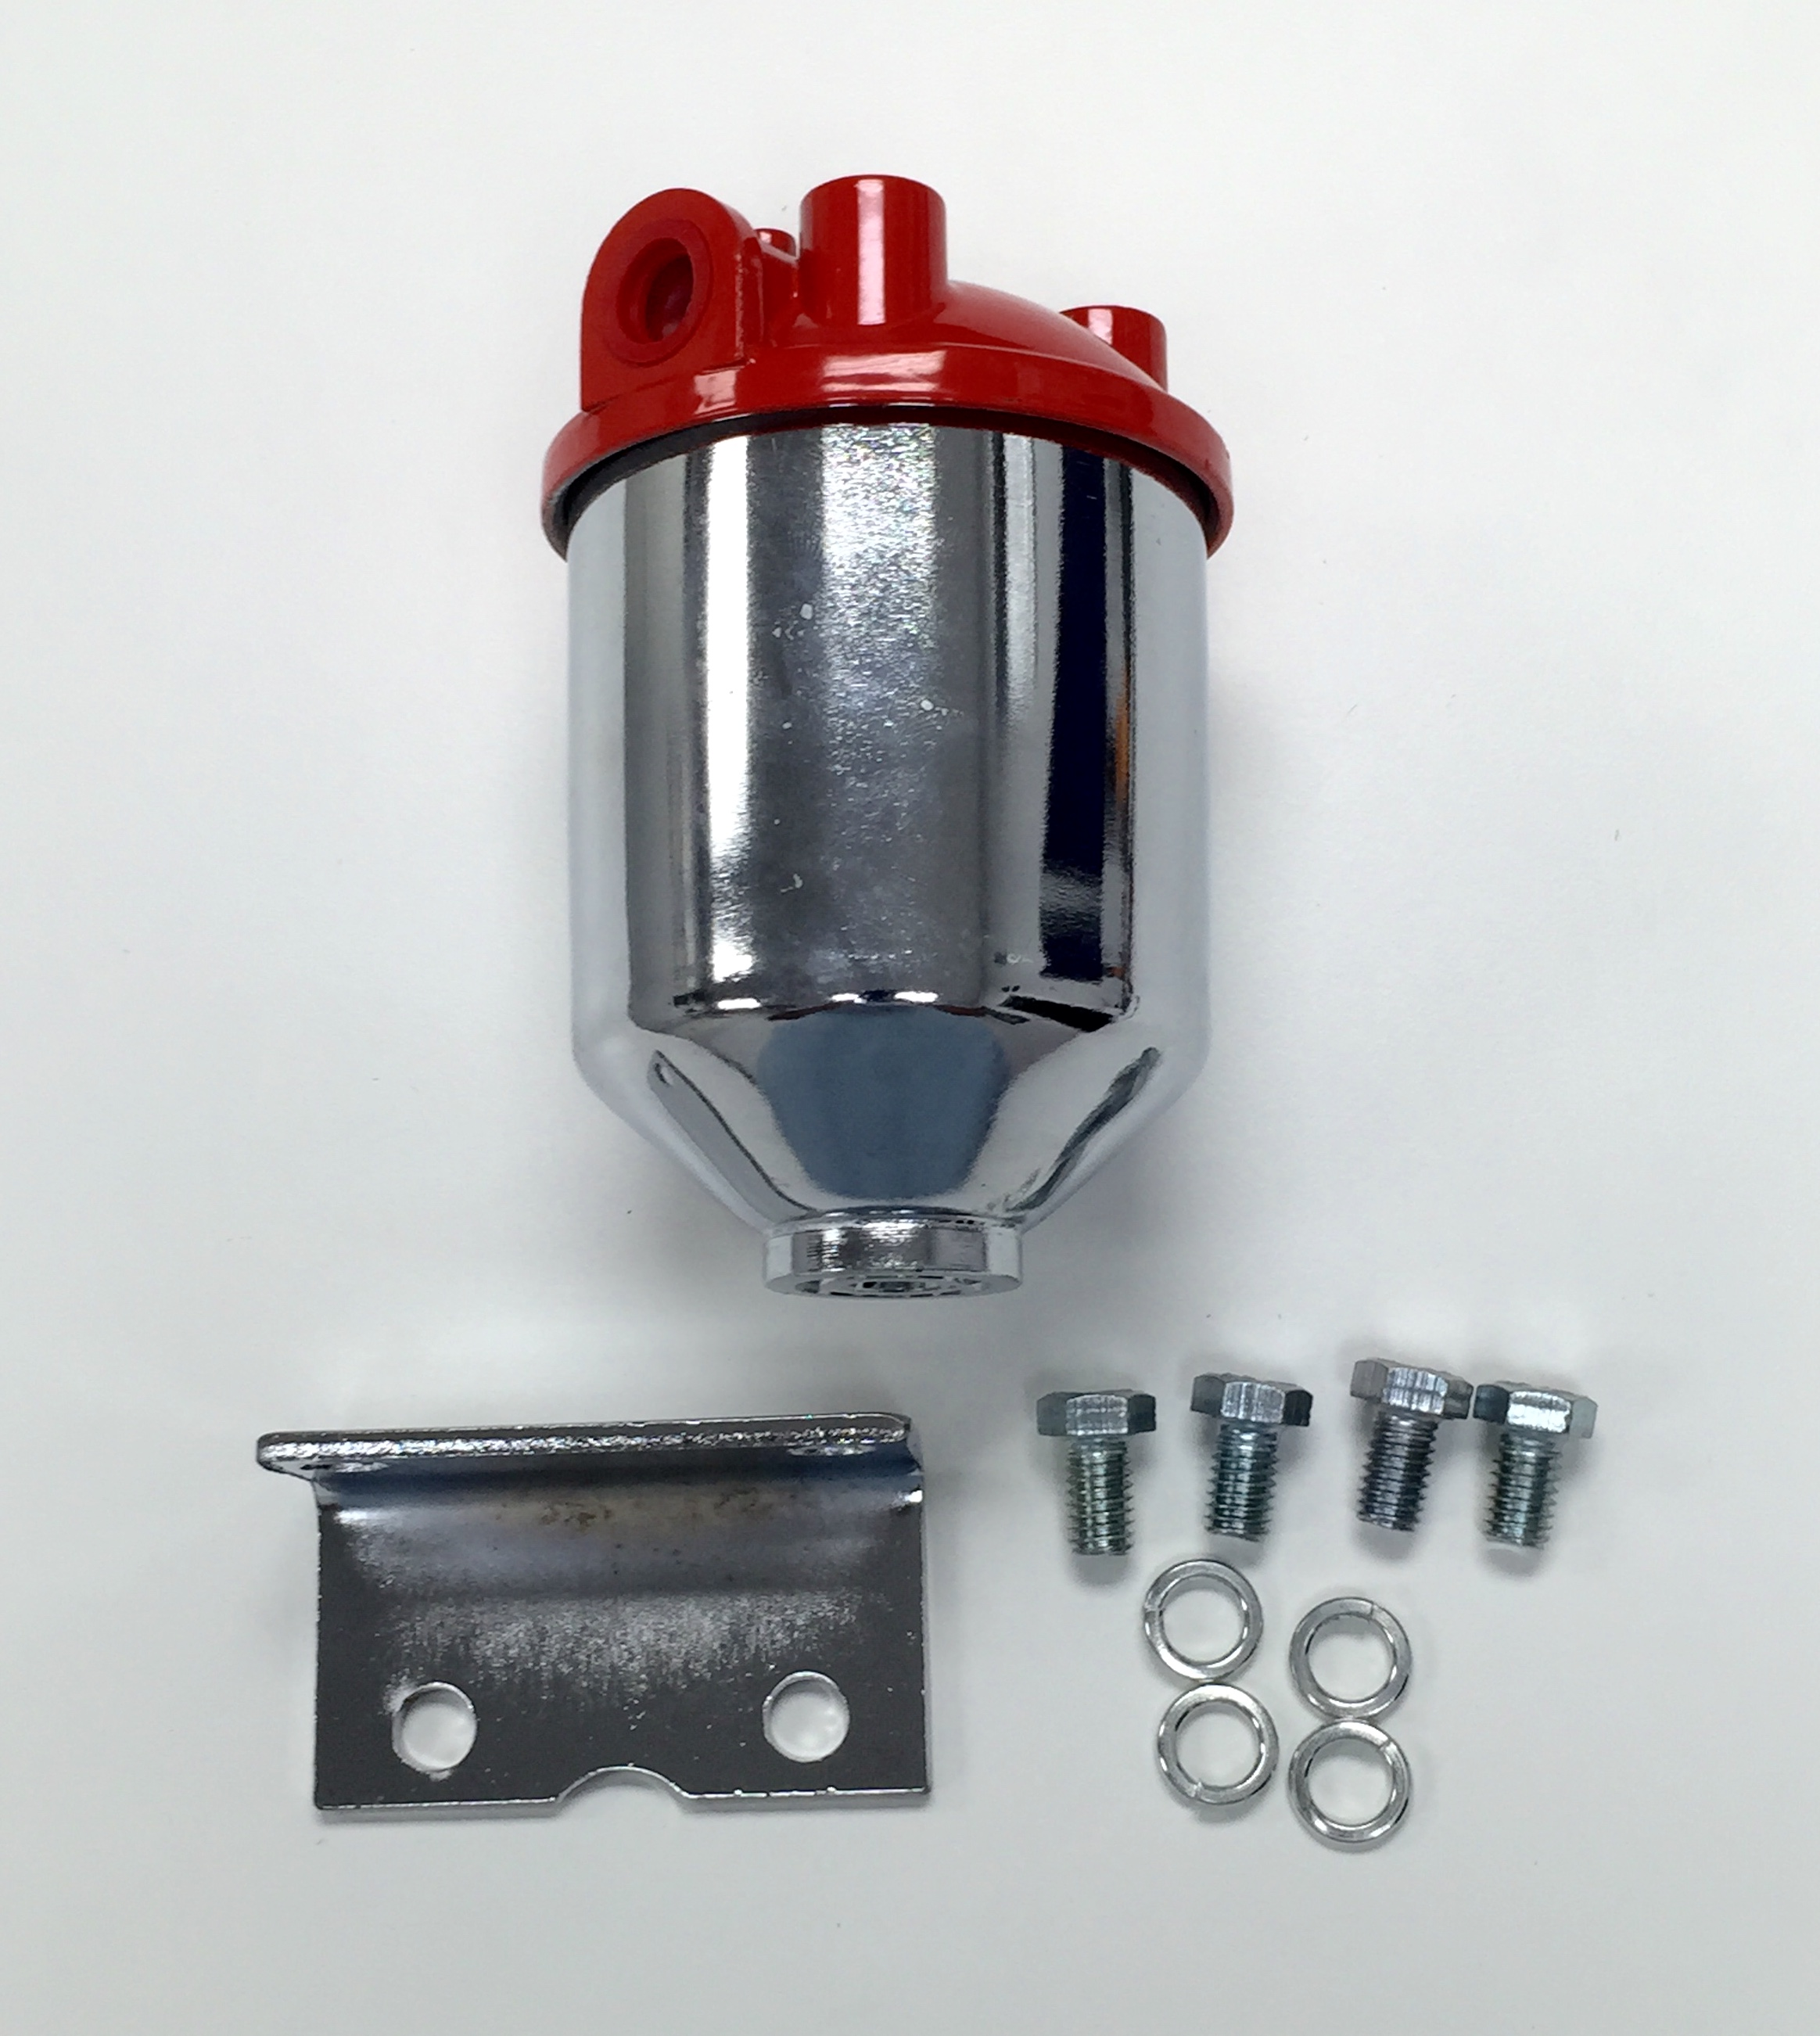 Hot Rod Chrome Single Port Fuel Filter Red Top Large Capacity